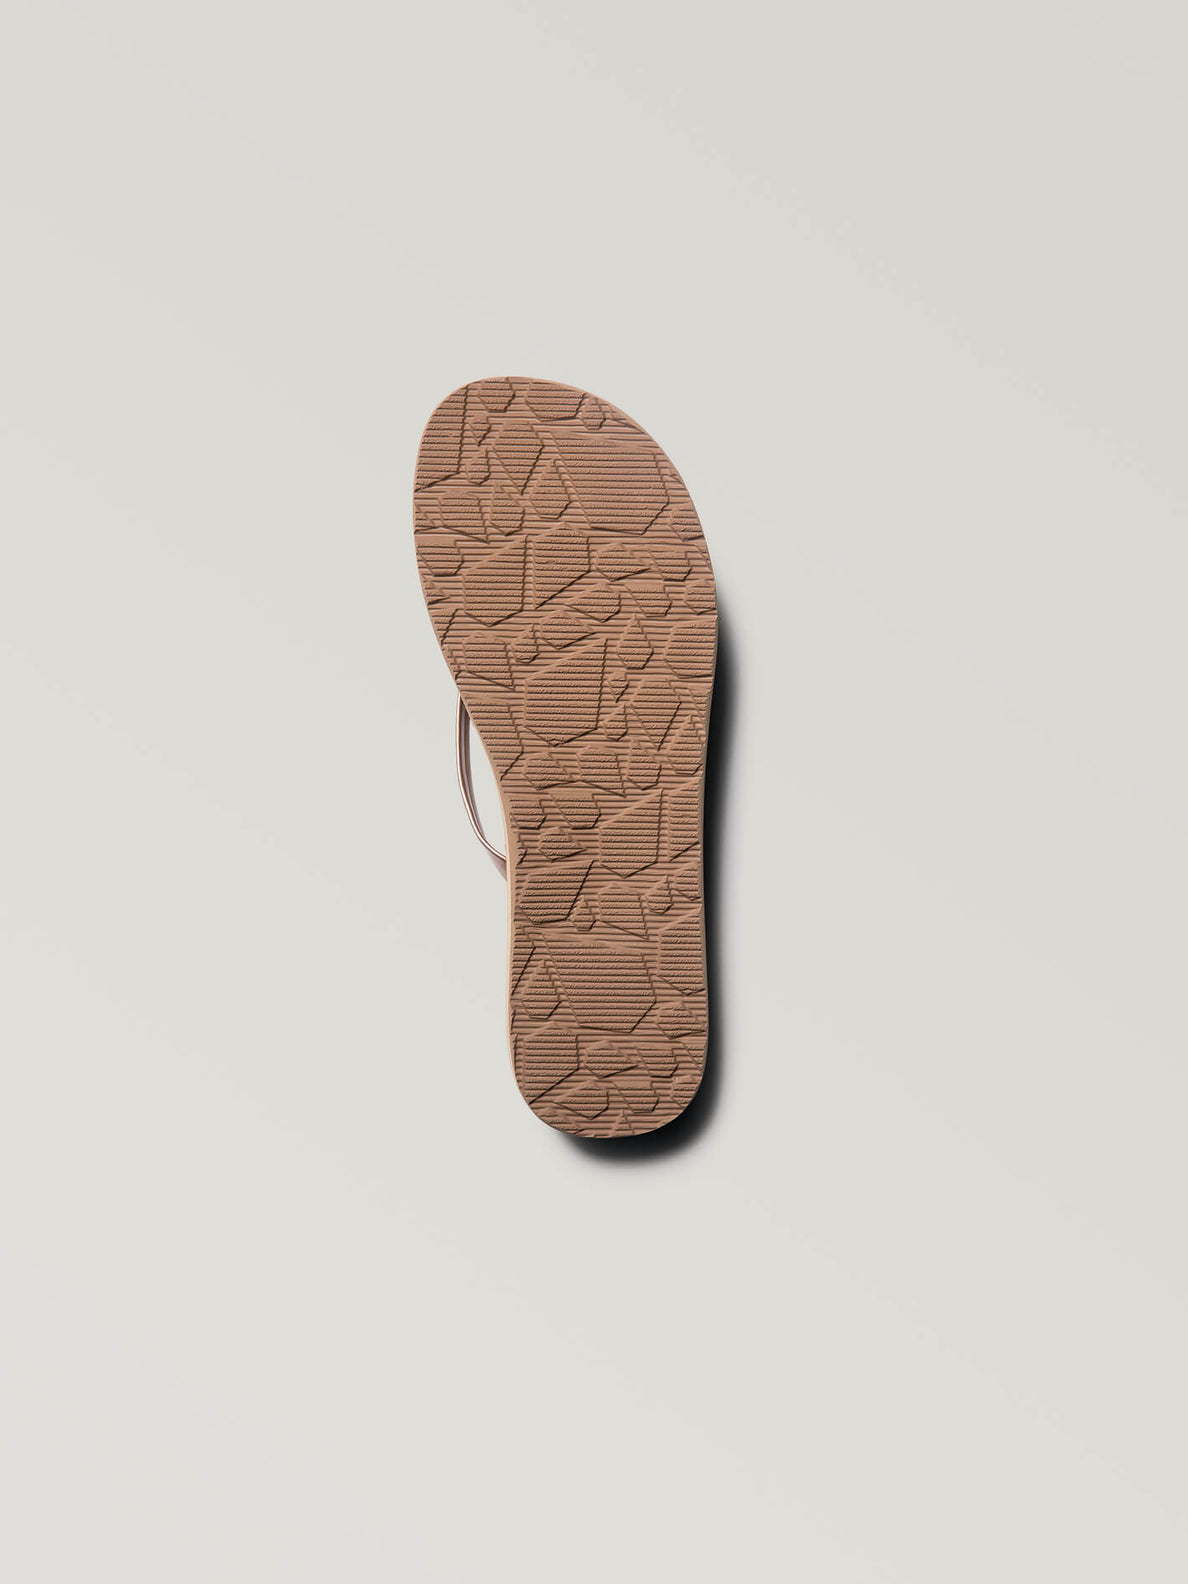 Lagos Sandals In Rose Gold, Second Alternate View